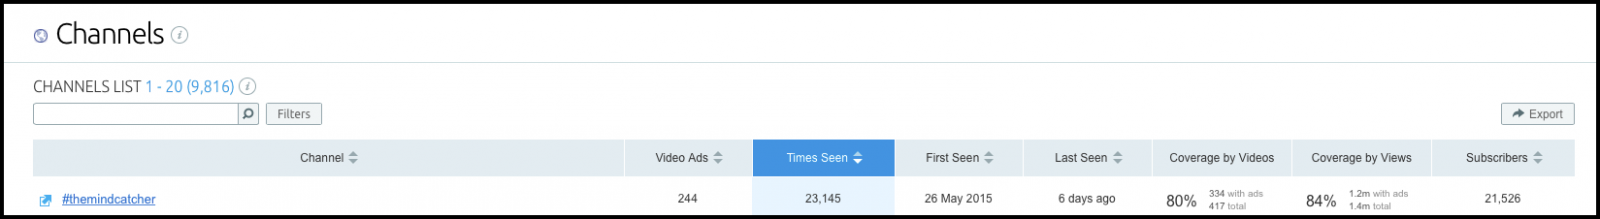 SEMrush Video Ads Research Channels Overview